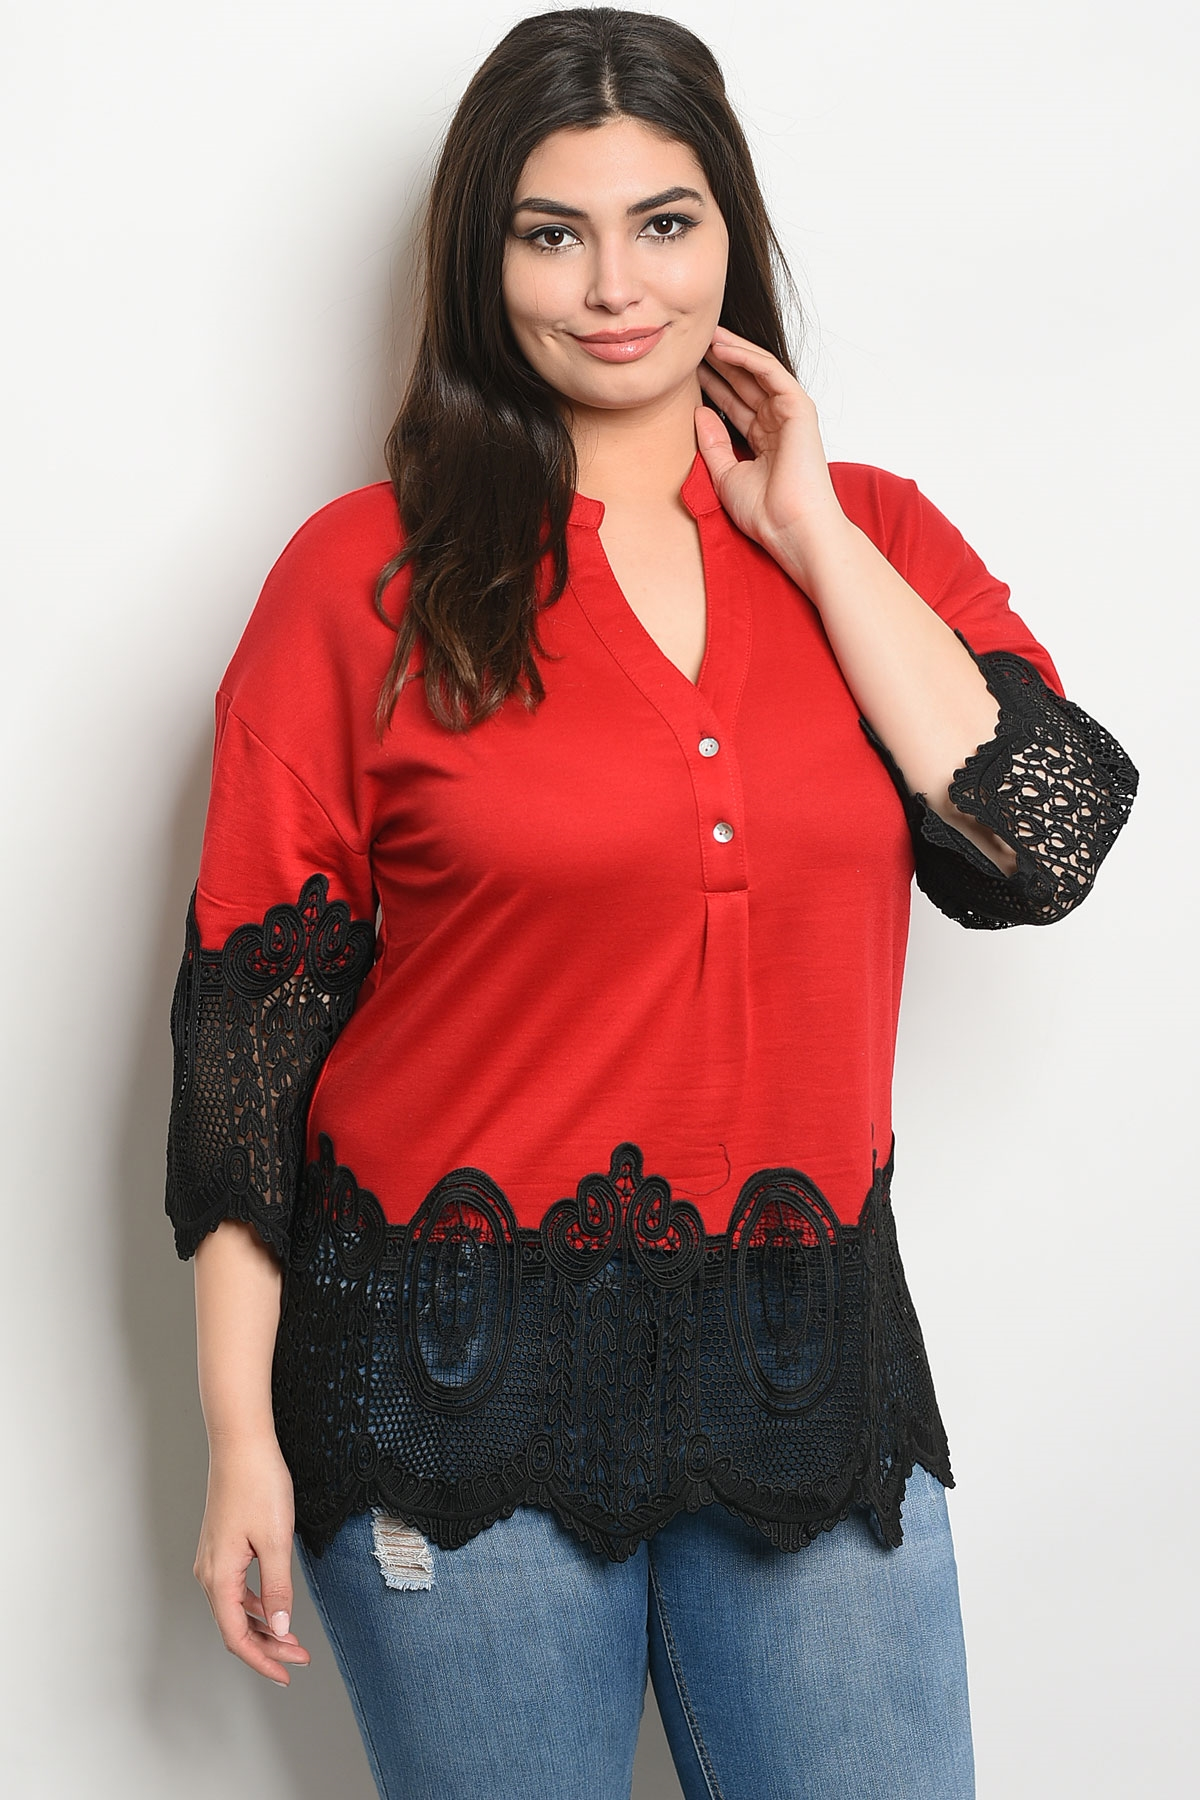 919a14324237 S14-5-3-T38674X RED BLACK PLUS SIZE TOP 2-2-2